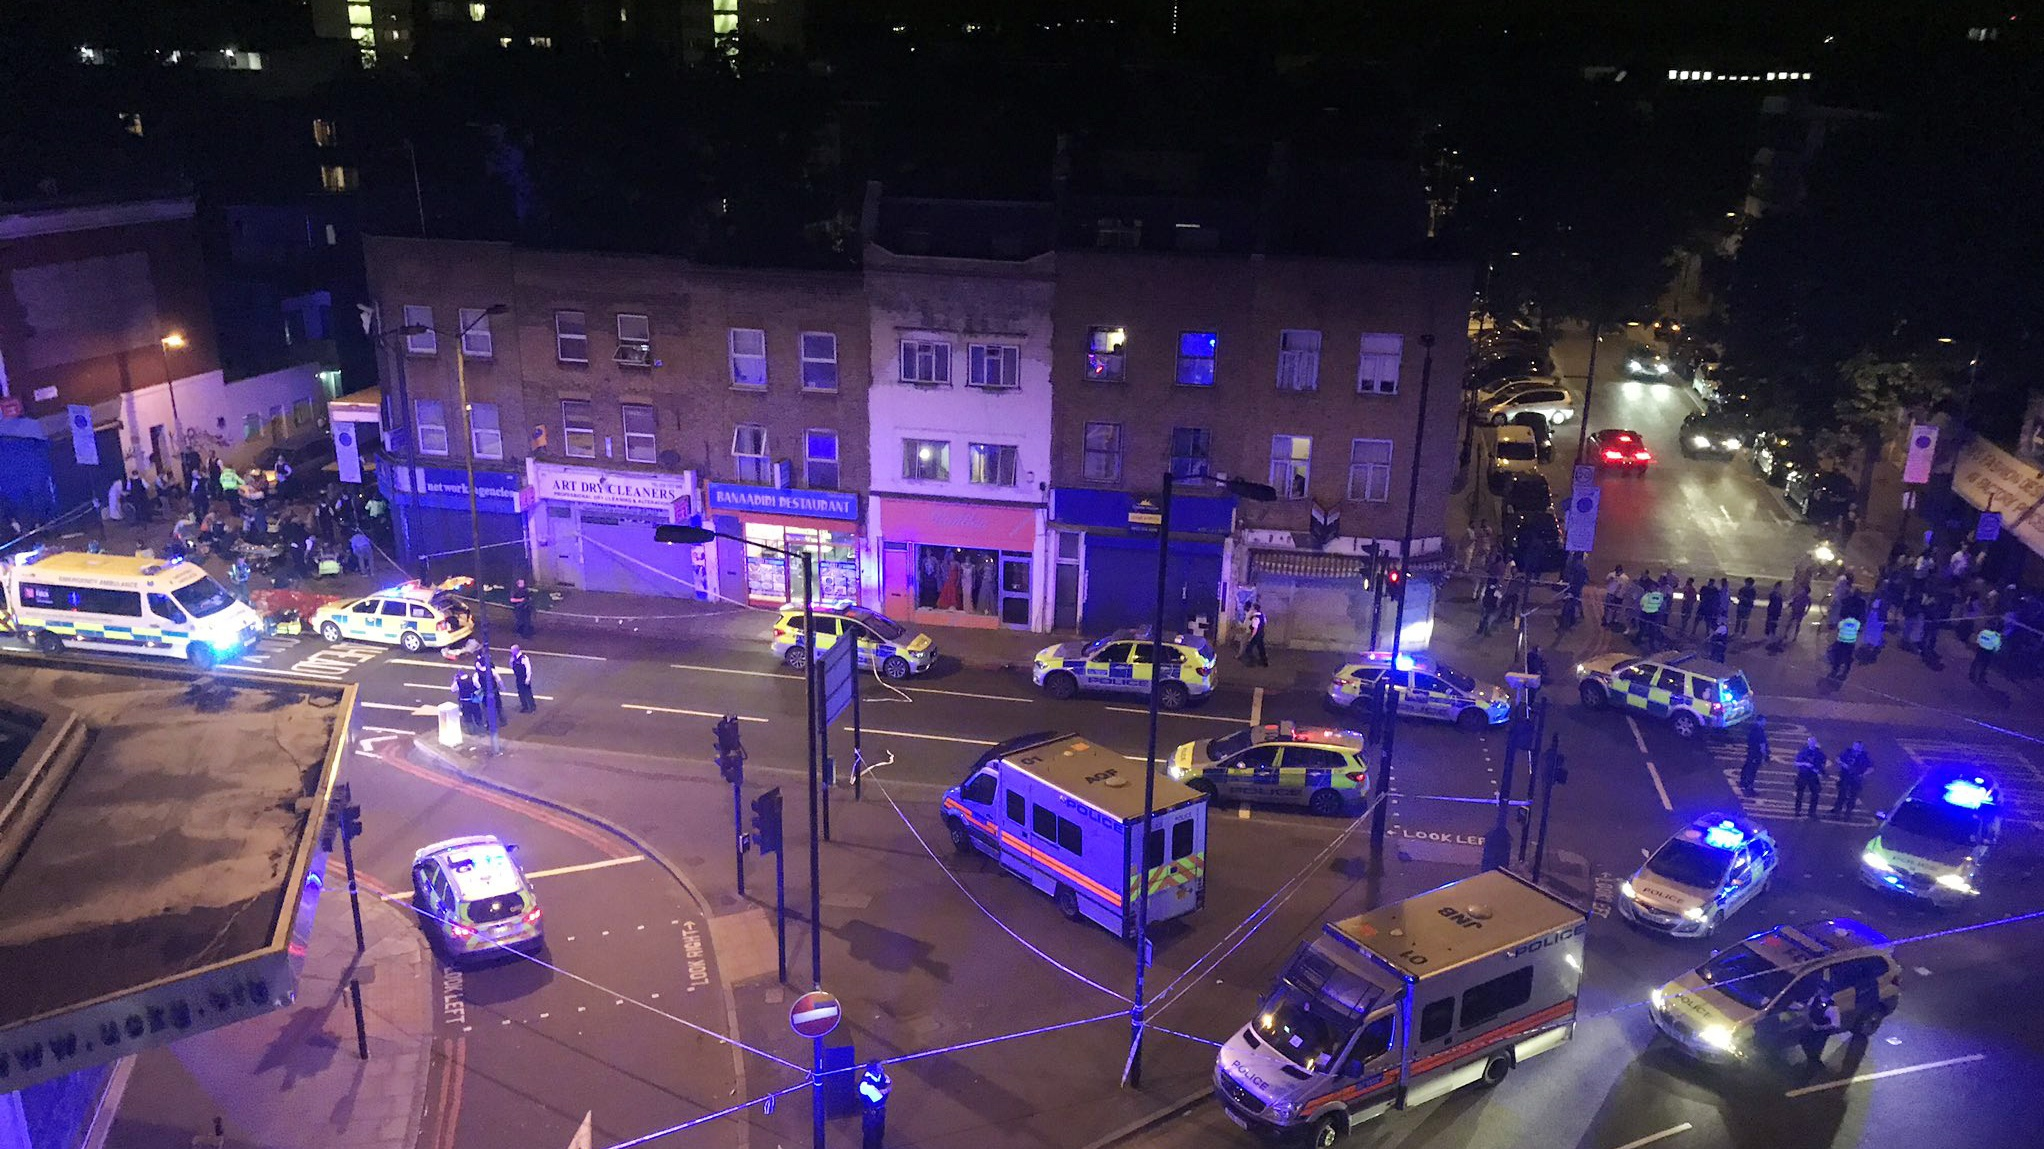 Vehicle Collides With Pedestrians in 'Major Incident,' Say London Police